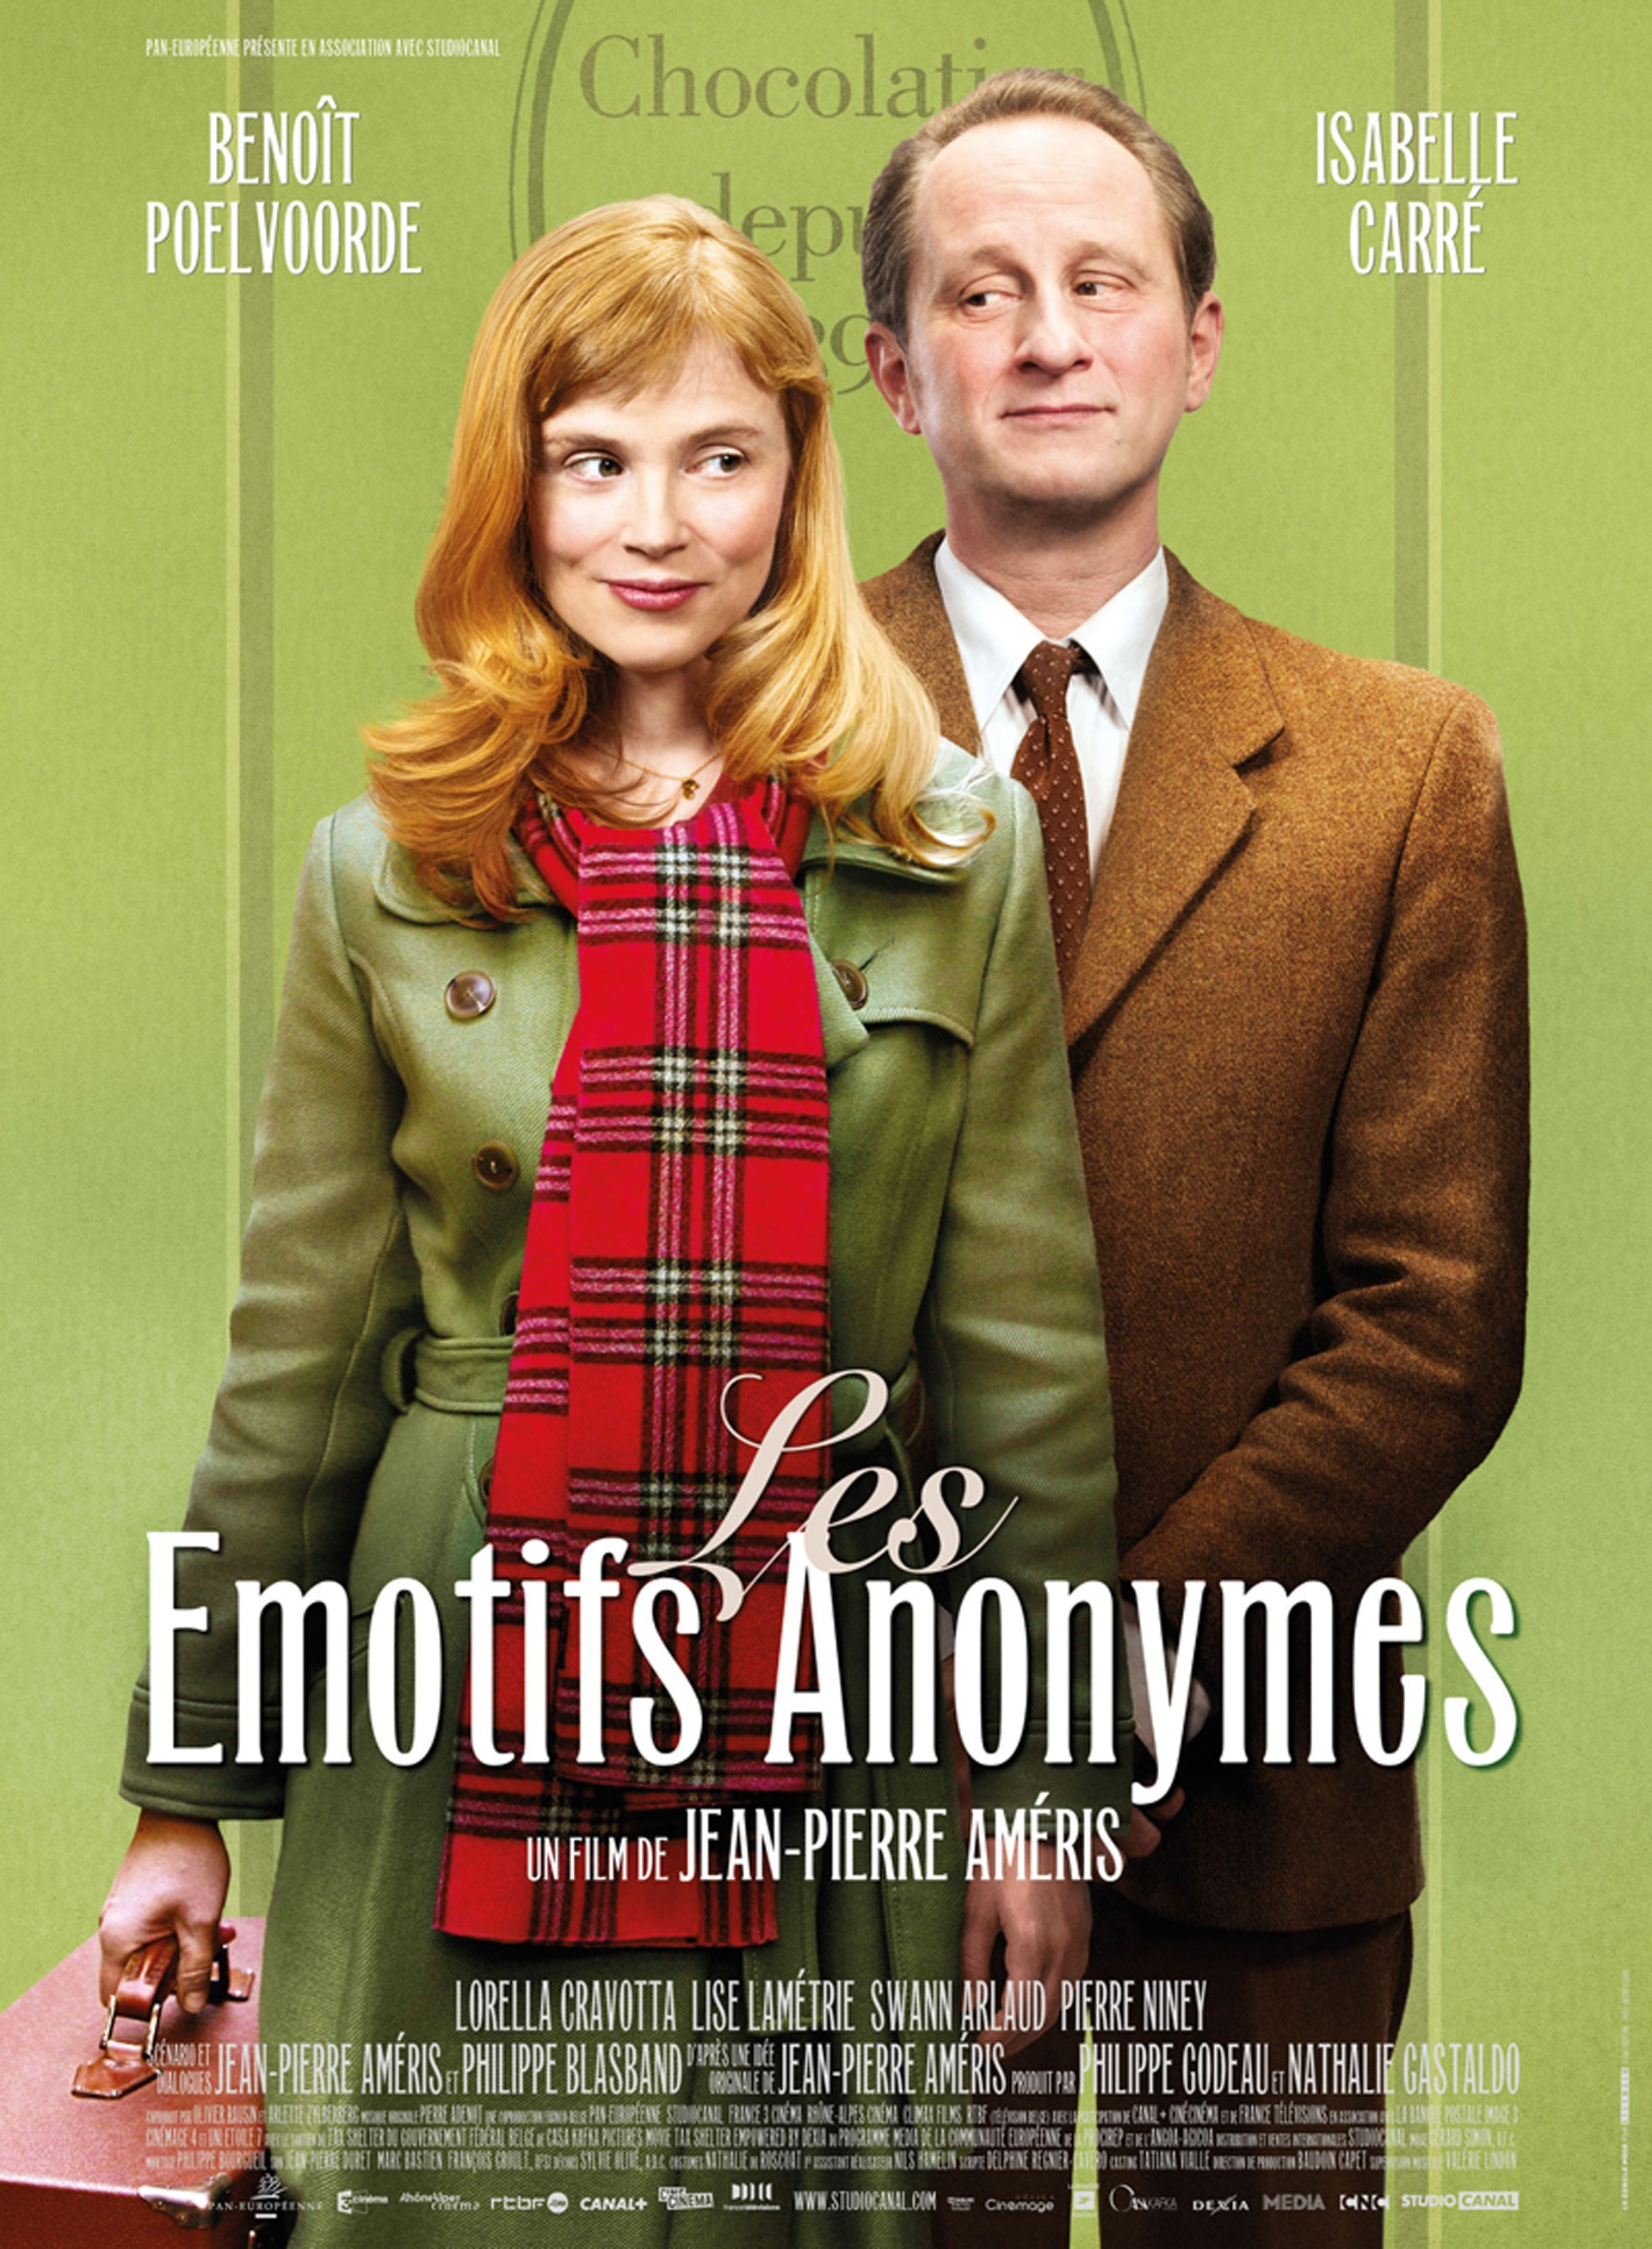 Les Emotifs anonymes [DVDRiP] [FRENCH] [MULTI]